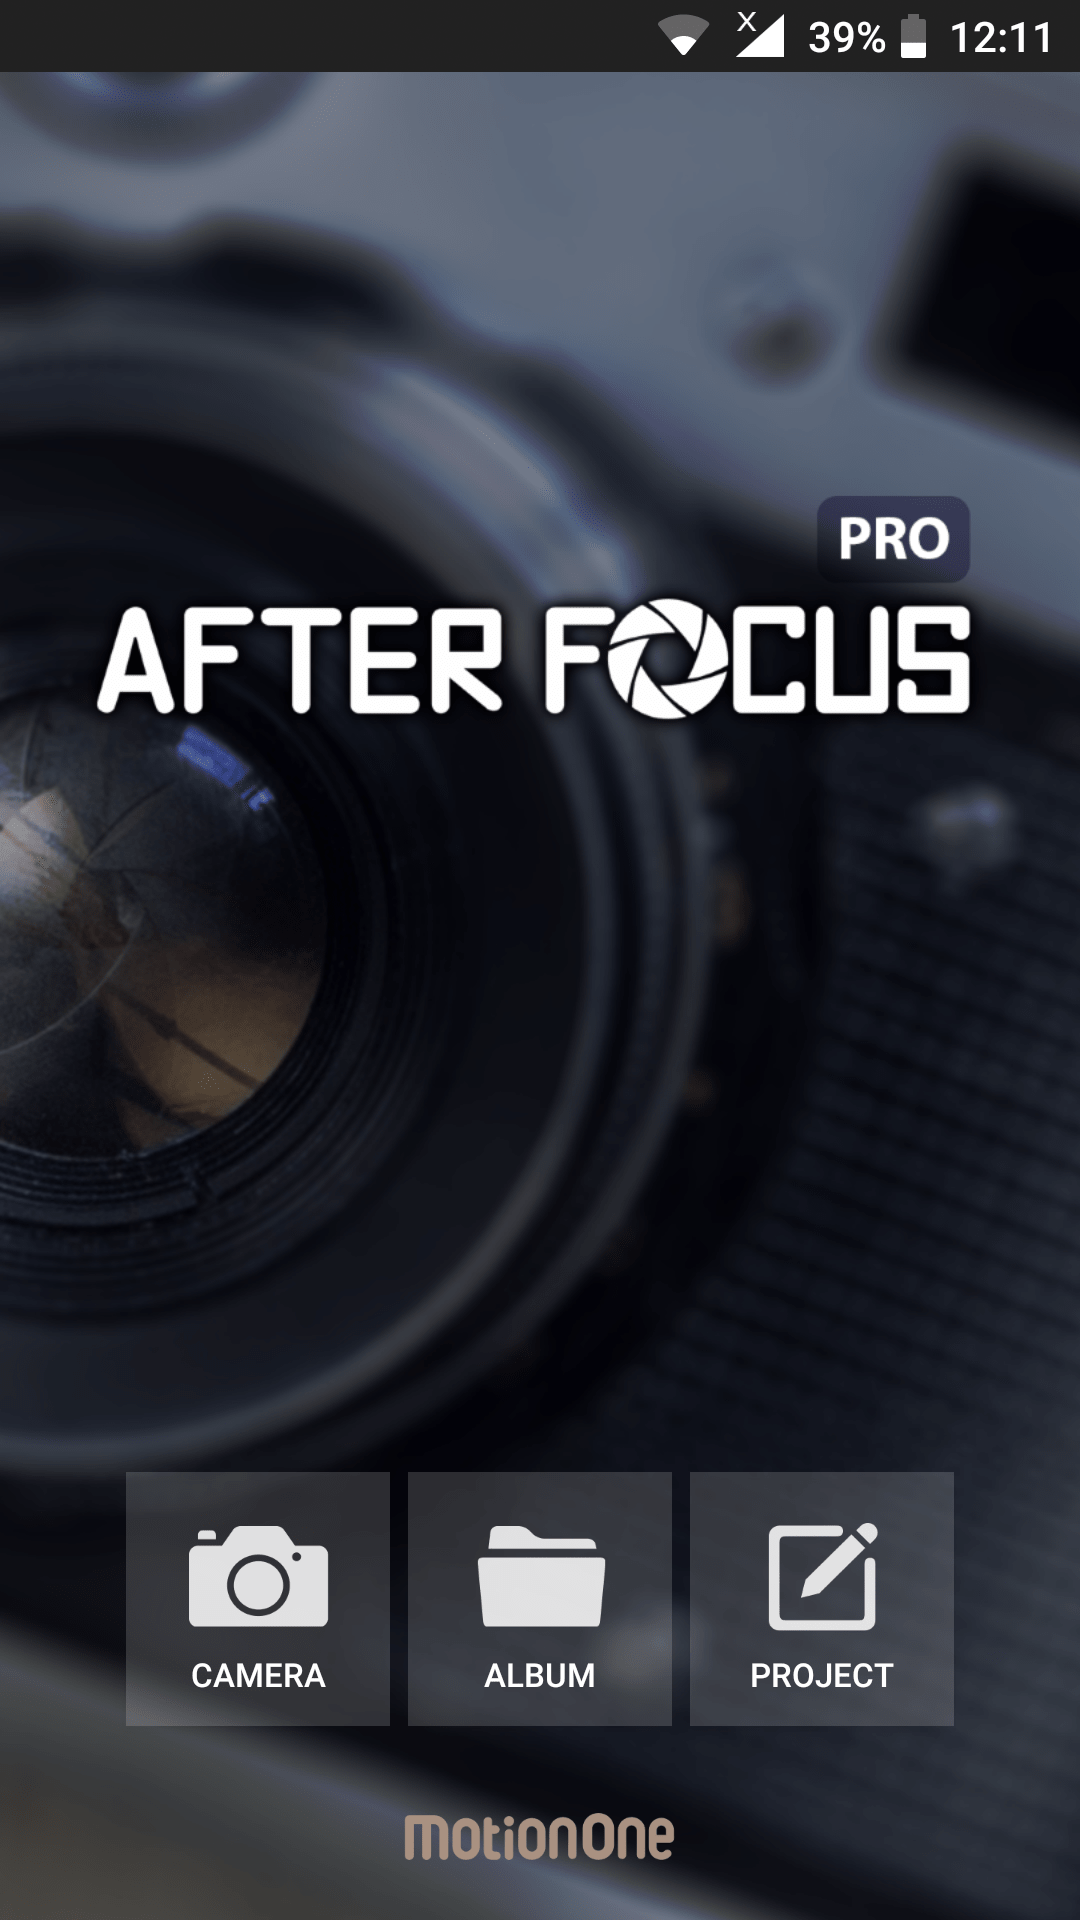 AfterFocus Pro APK Free Download (Latest Version) v2 1 0 for